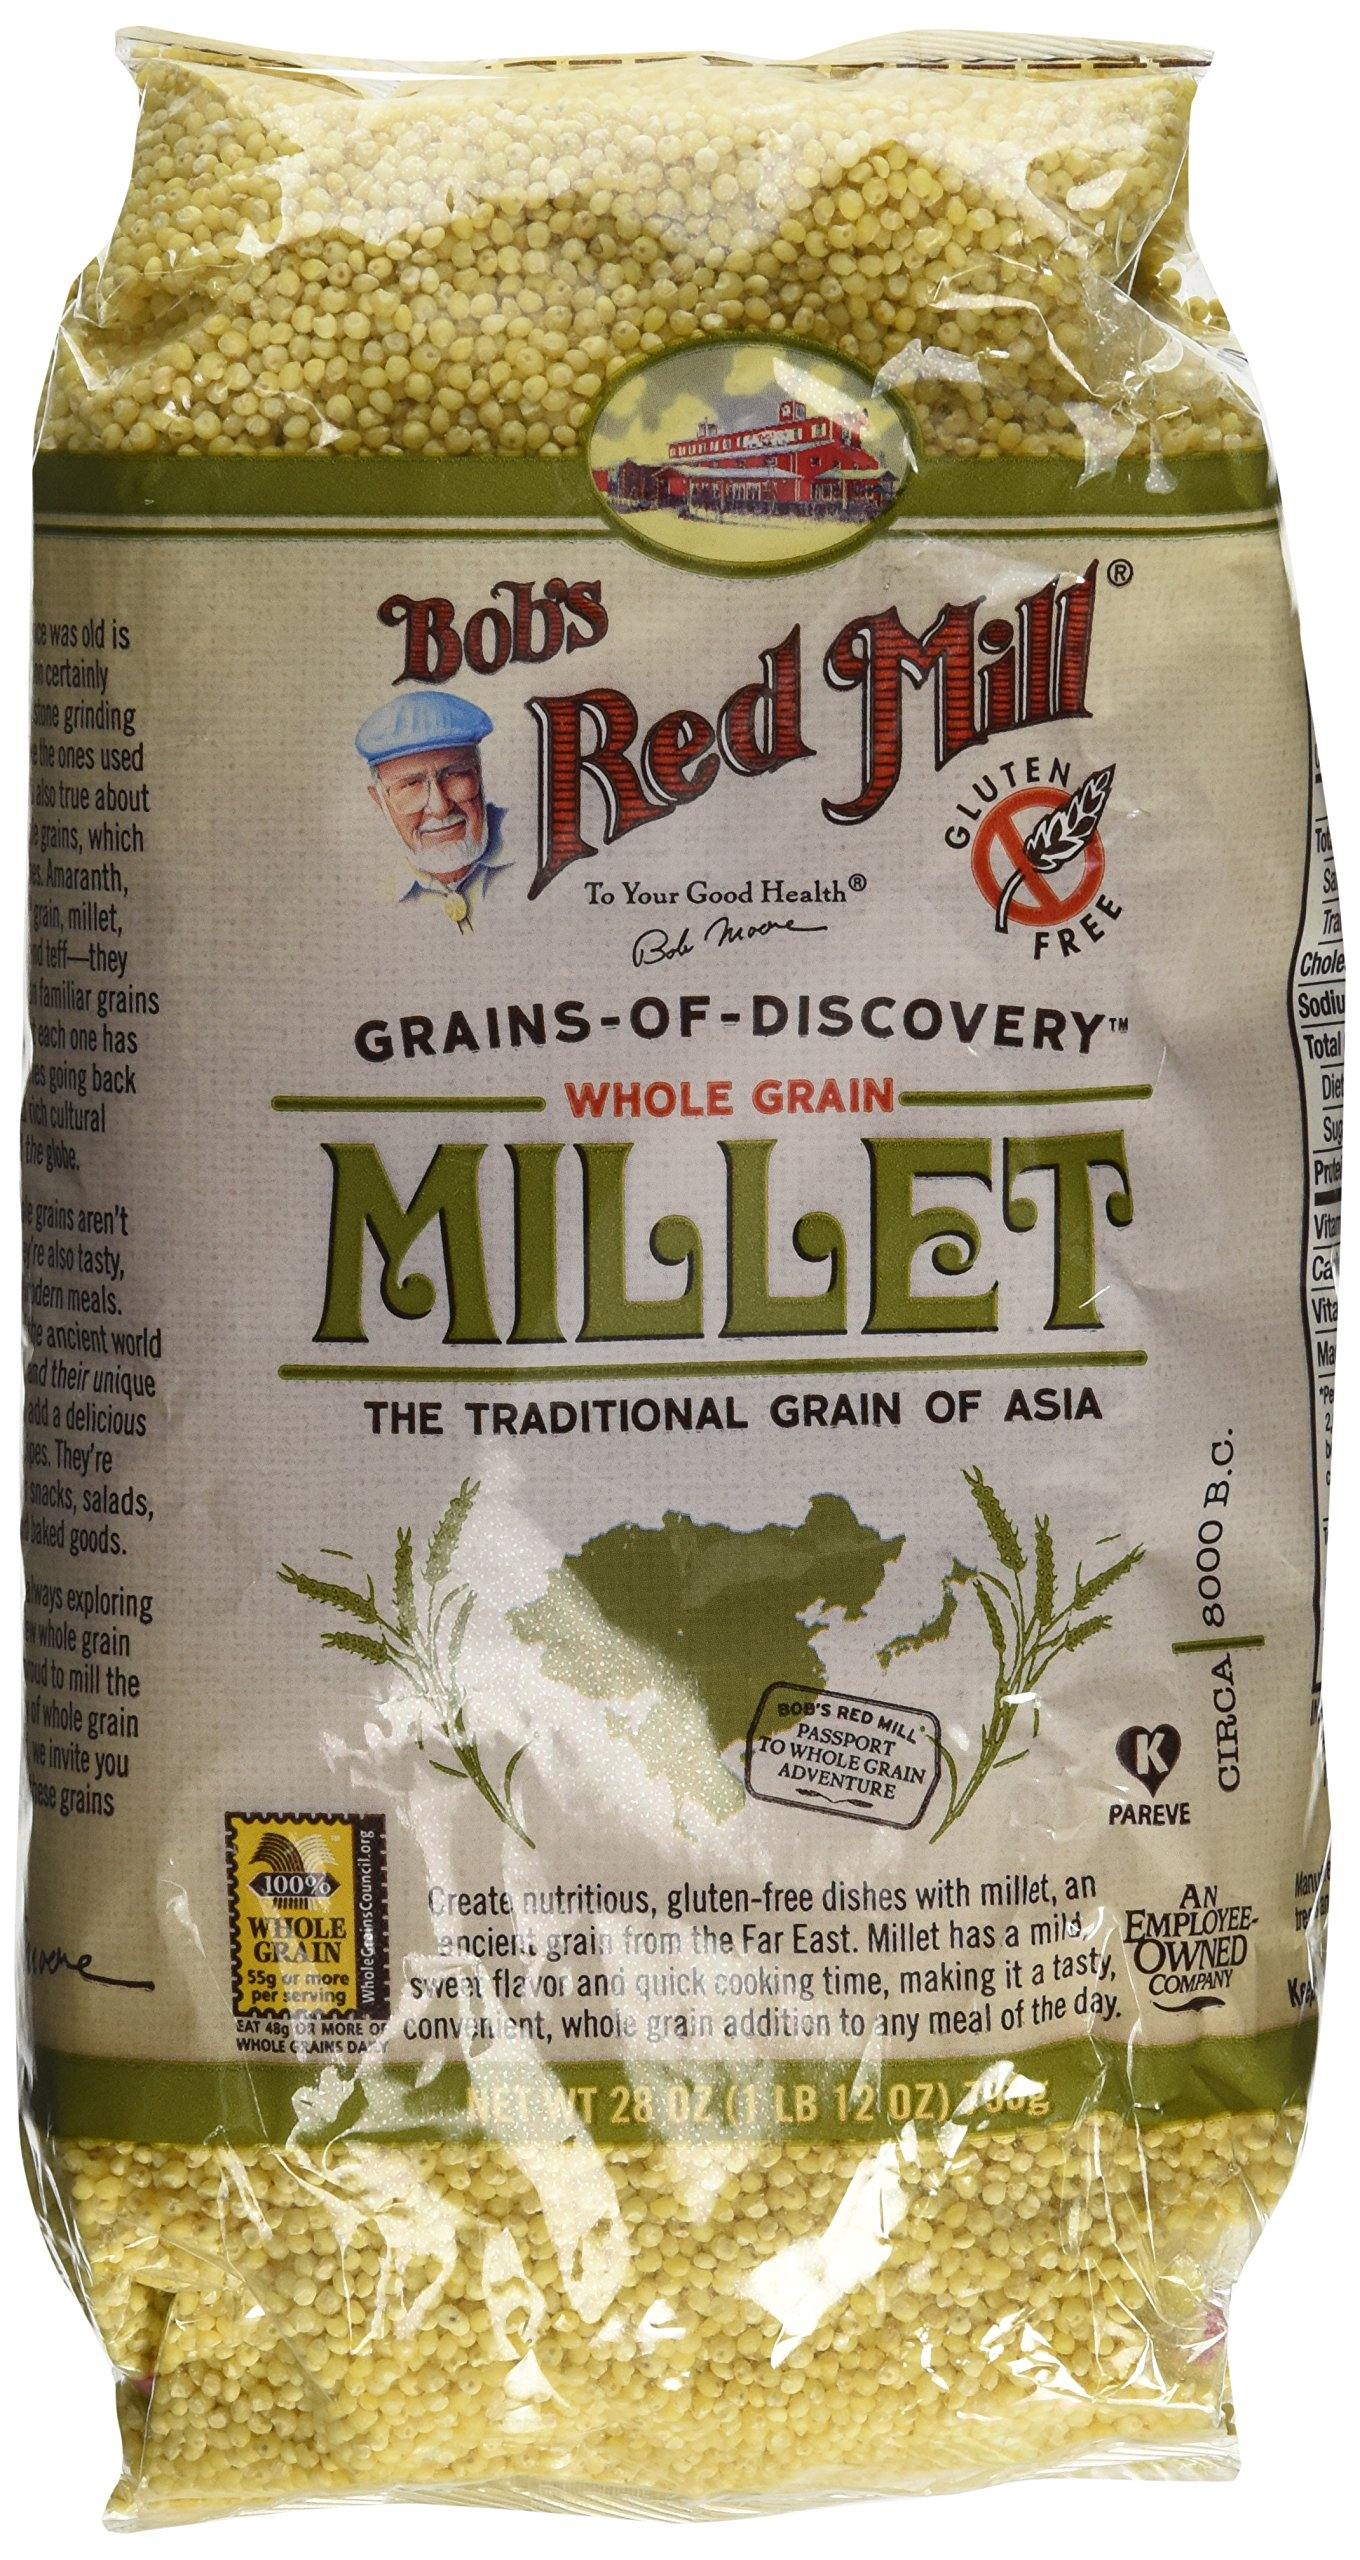 Bobs Red Mill Millet Hulled Gf, 28oz, (Pack of 2)